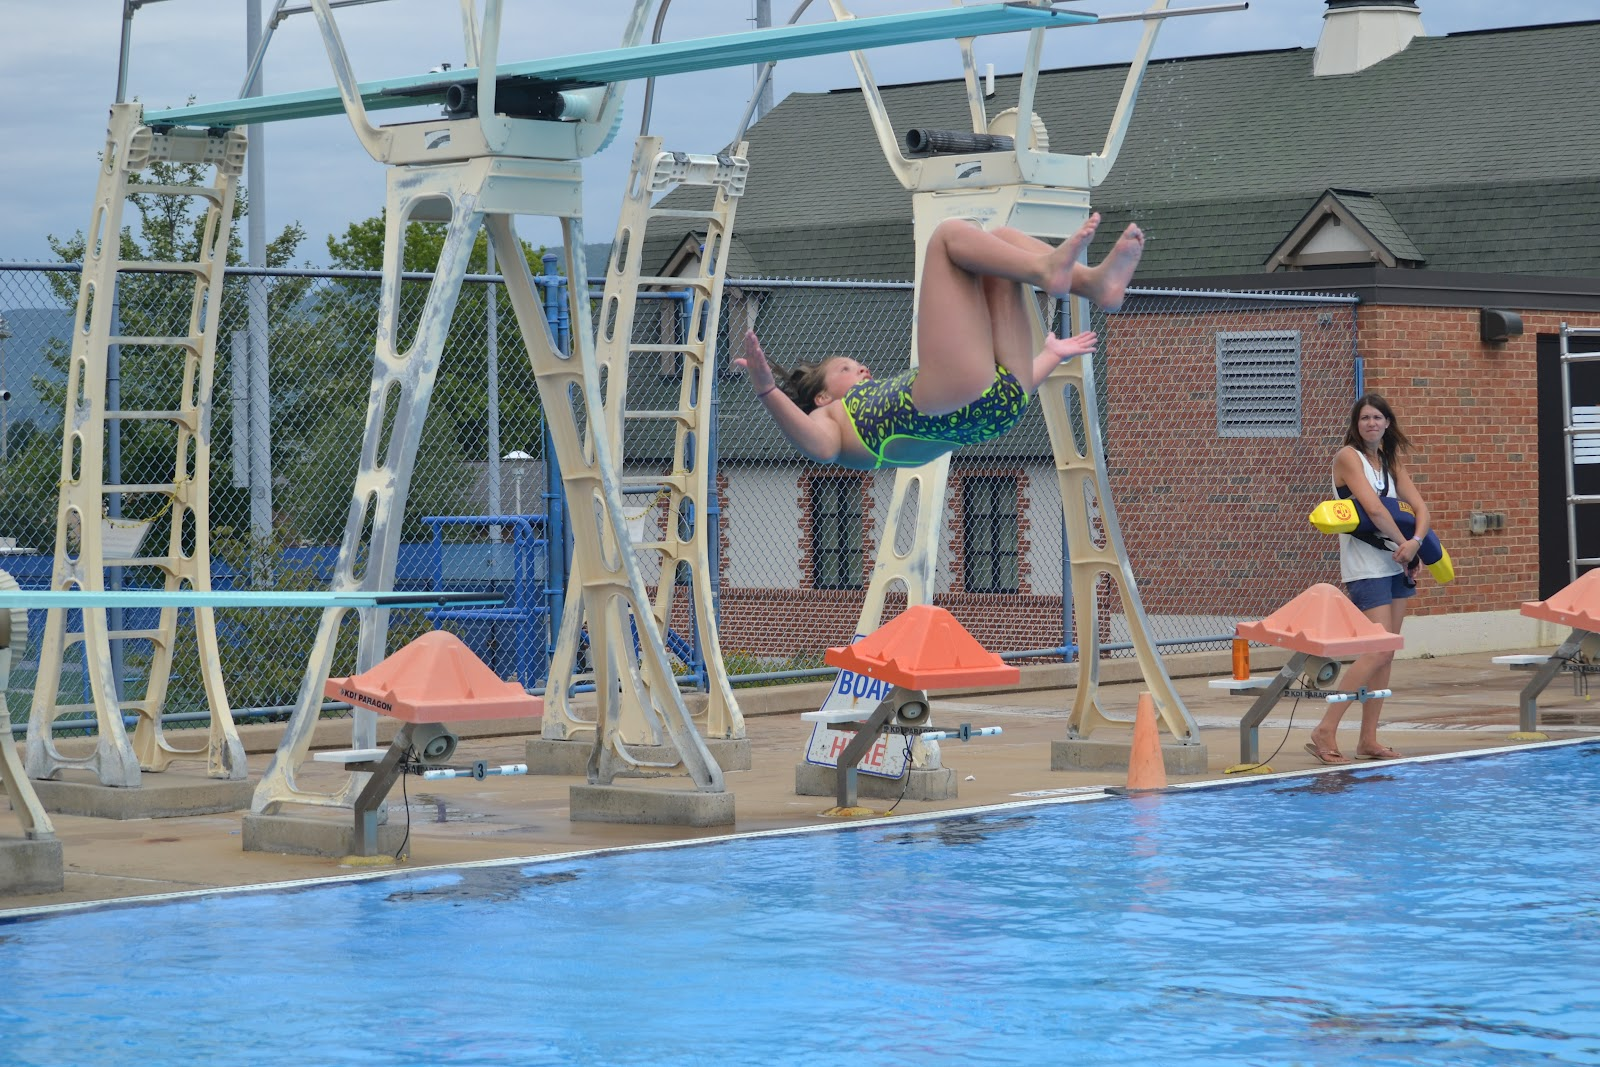 Jersey shore pa swim reason 7 on importance of learning to swim pretending to be olympic - Dive recorder results ...